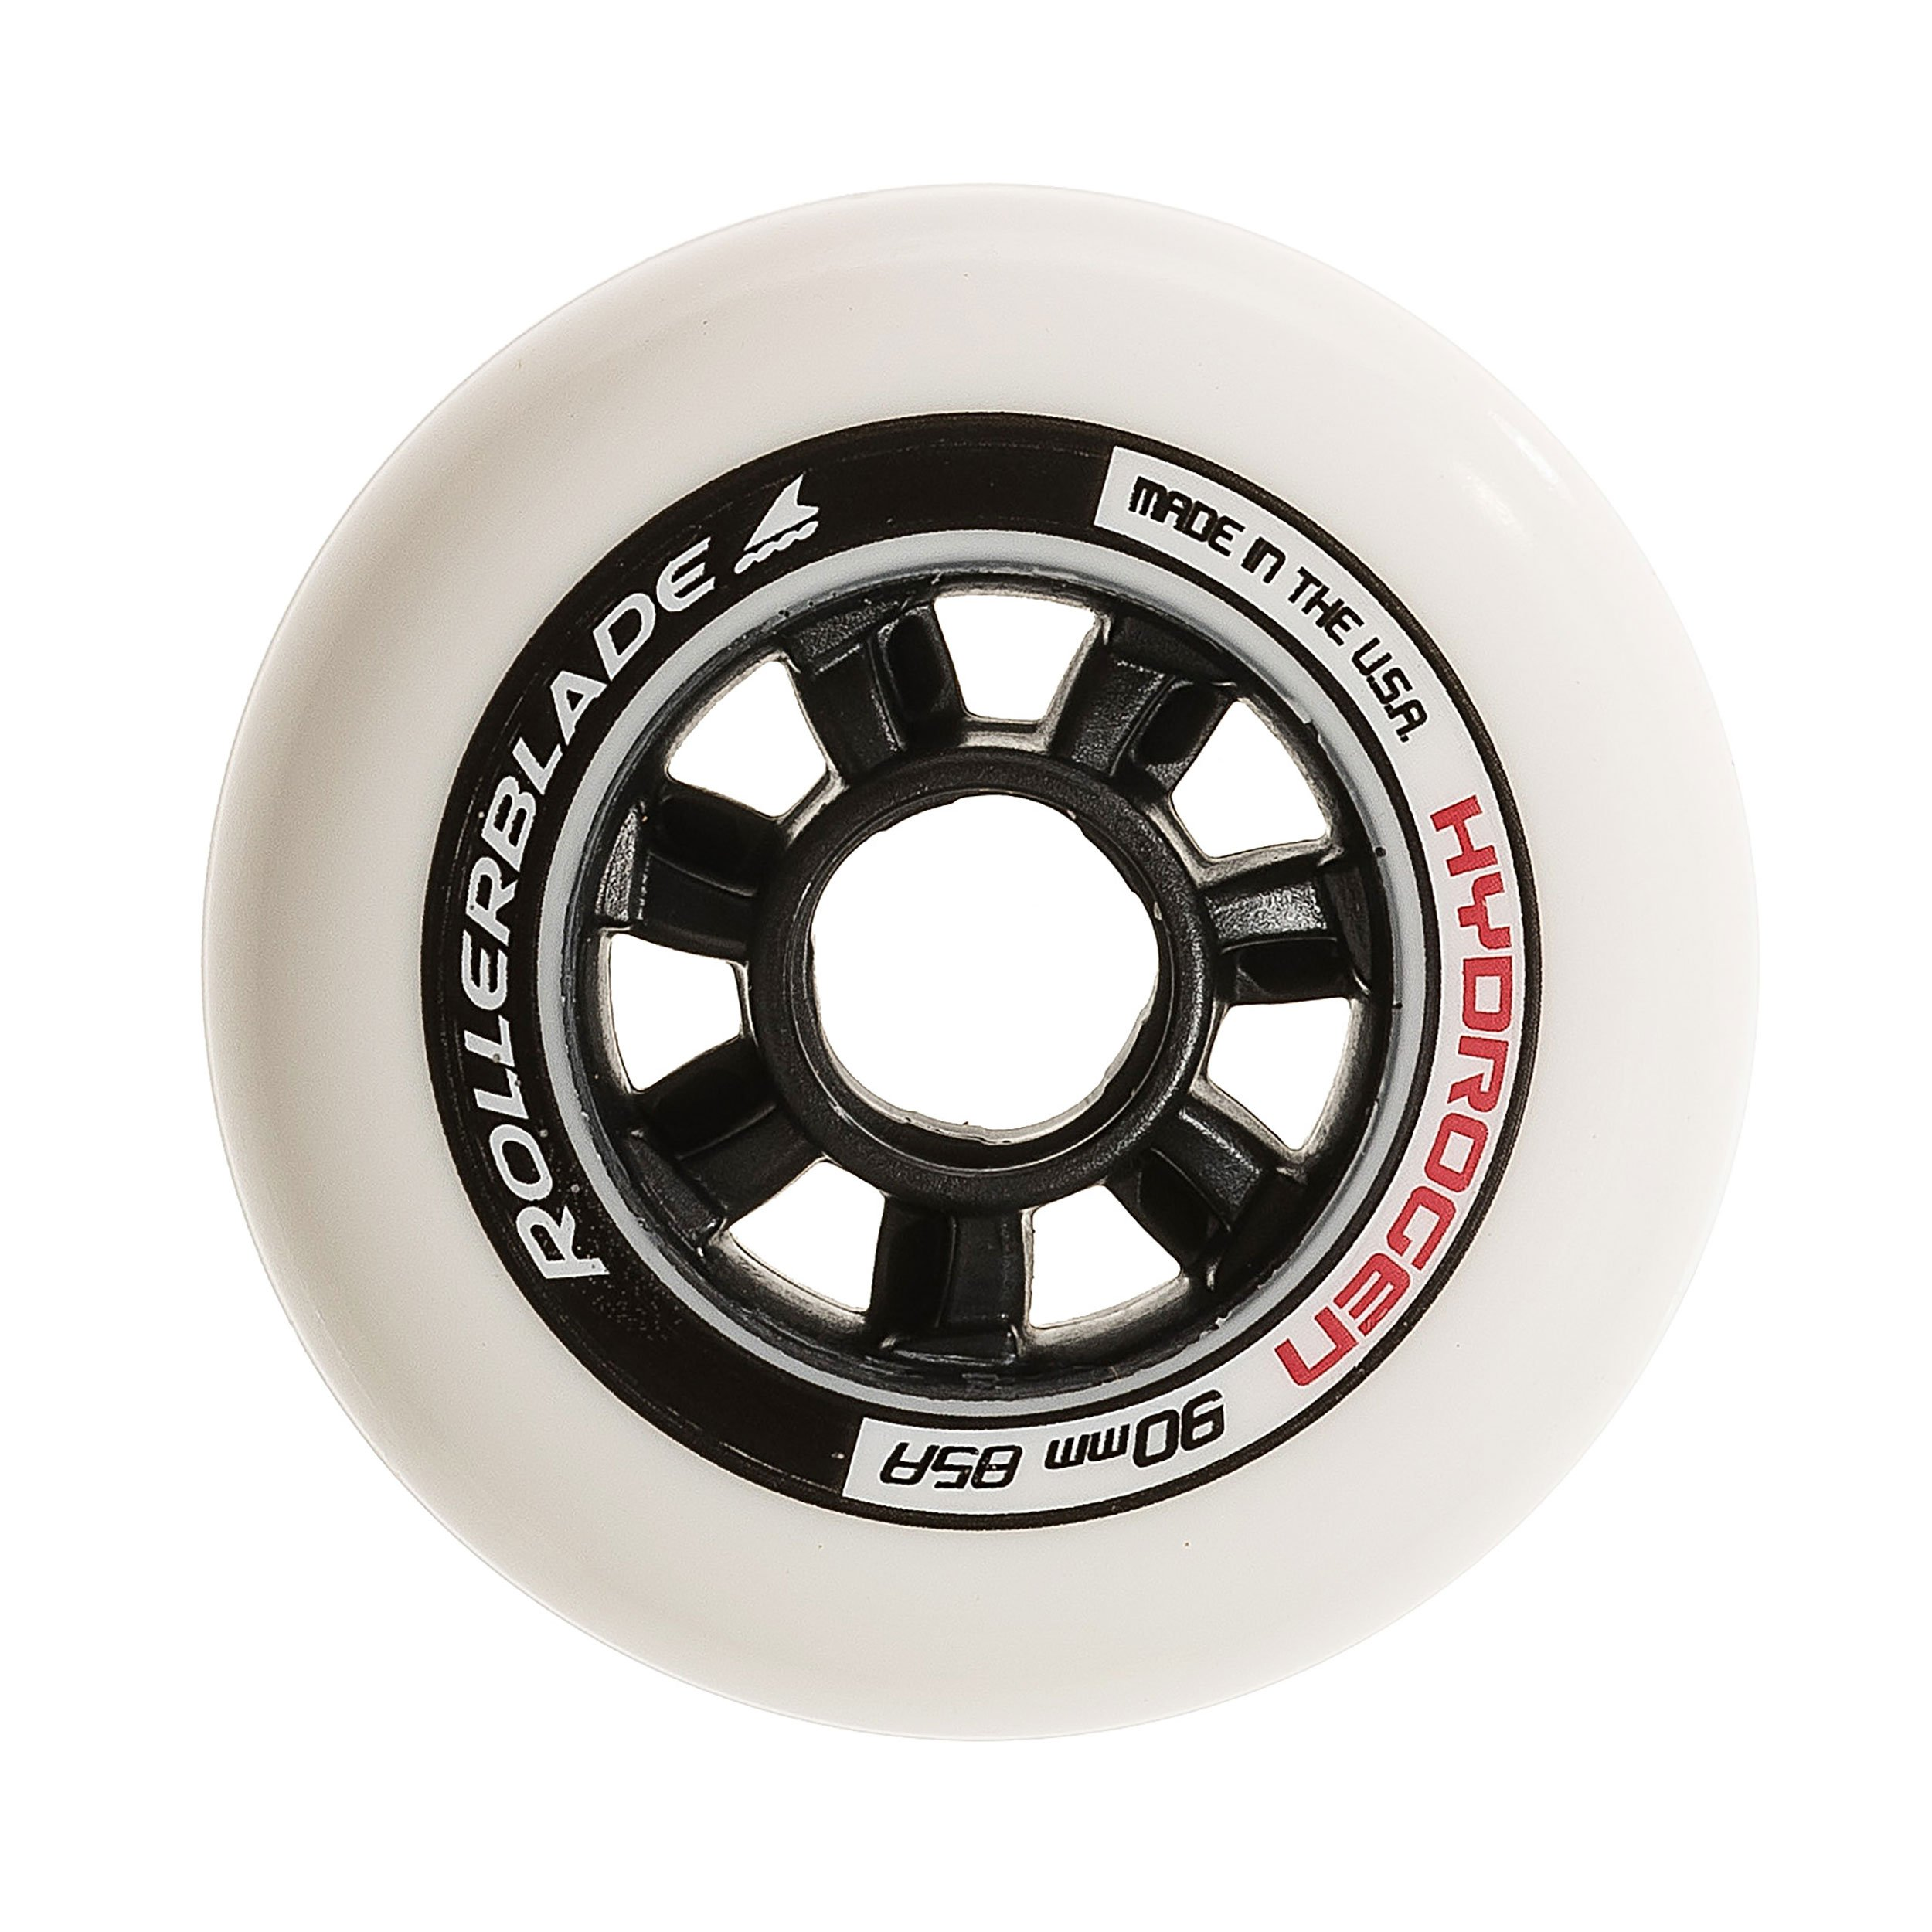 Rollerblade Hydrogen 90mm 85A Wheels (8 Pack), White, One Size by Rollerblade